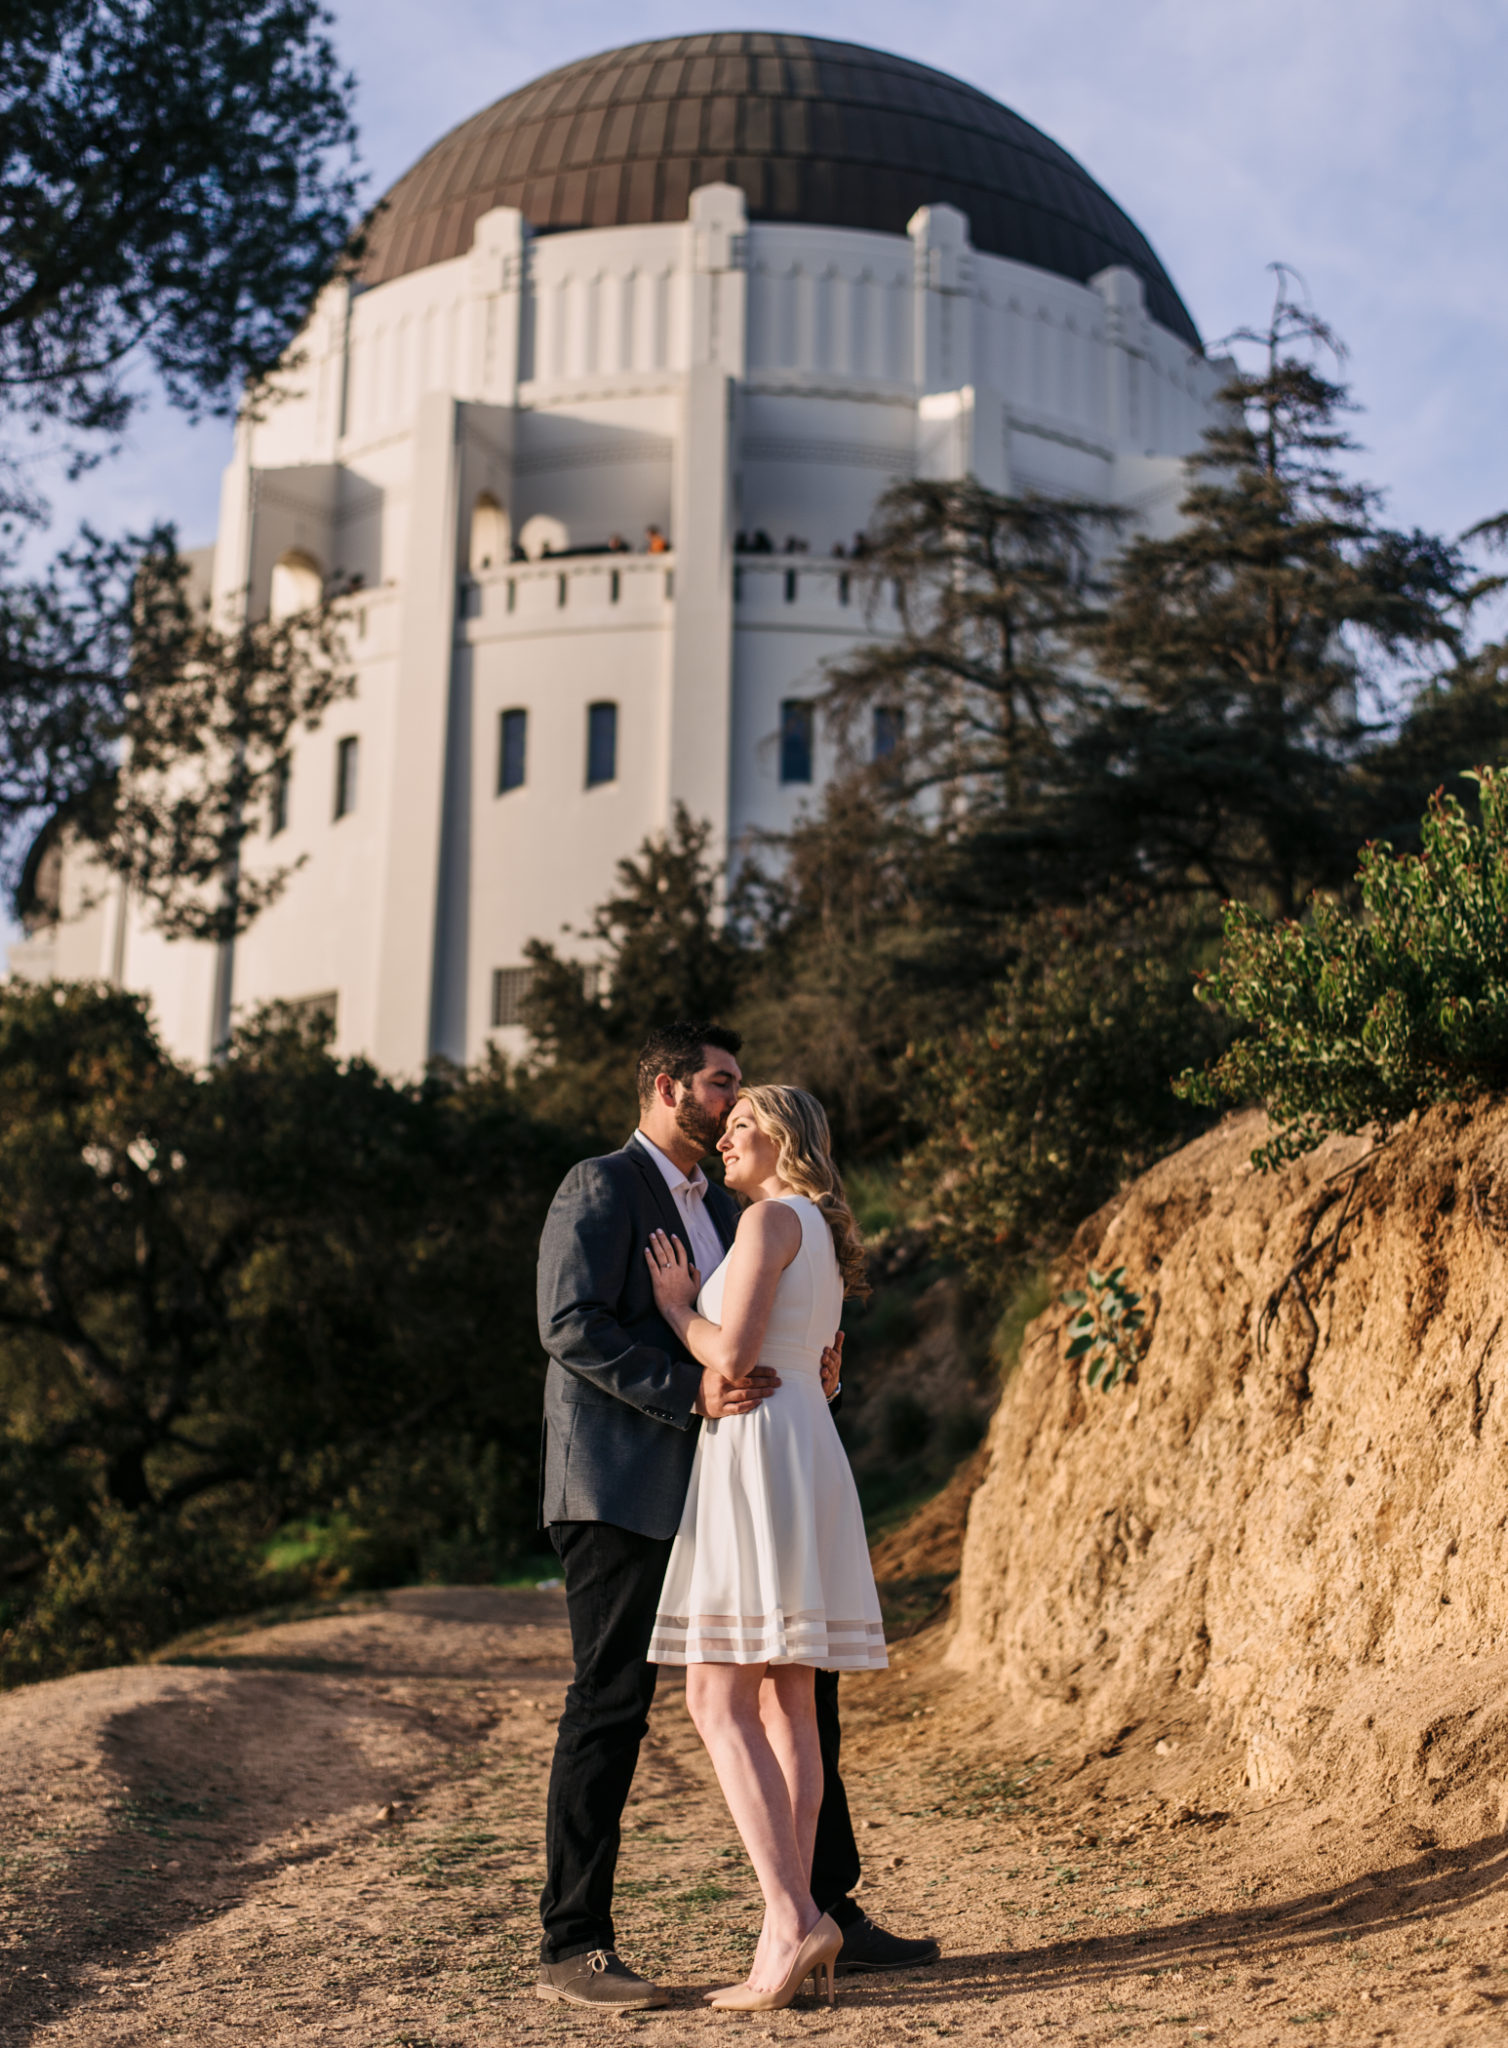 Sunset Portrait at the Griffith Park Observatory - Stephen Tang Photo